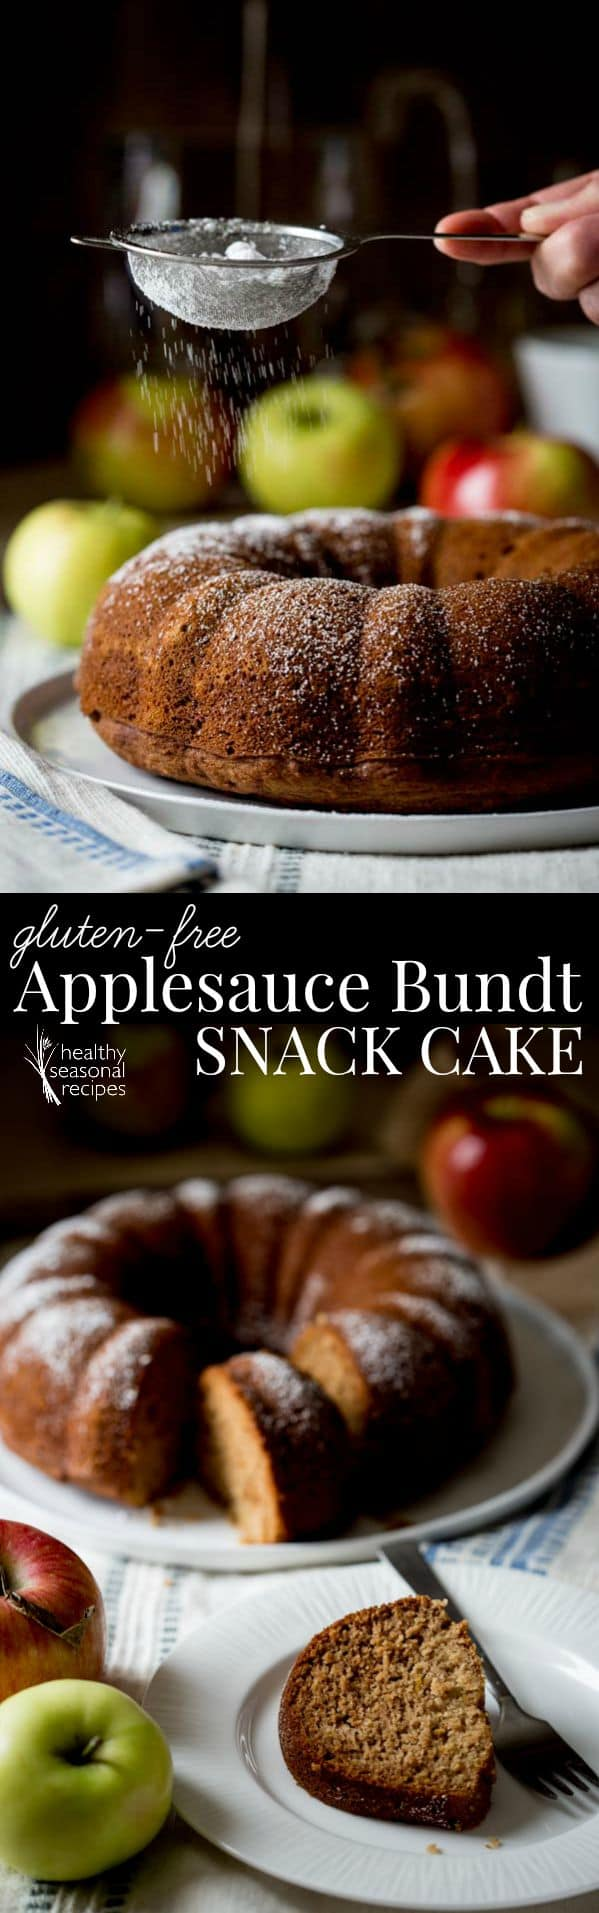 This gluten-free applesauce bundt snack cake is one of those recipes I have made over and over again. It is made with brown rice flour (that means it's whole grain) and it is sweetened with honey. #glutenfree #applesauce #apples #baking #snack #healthy